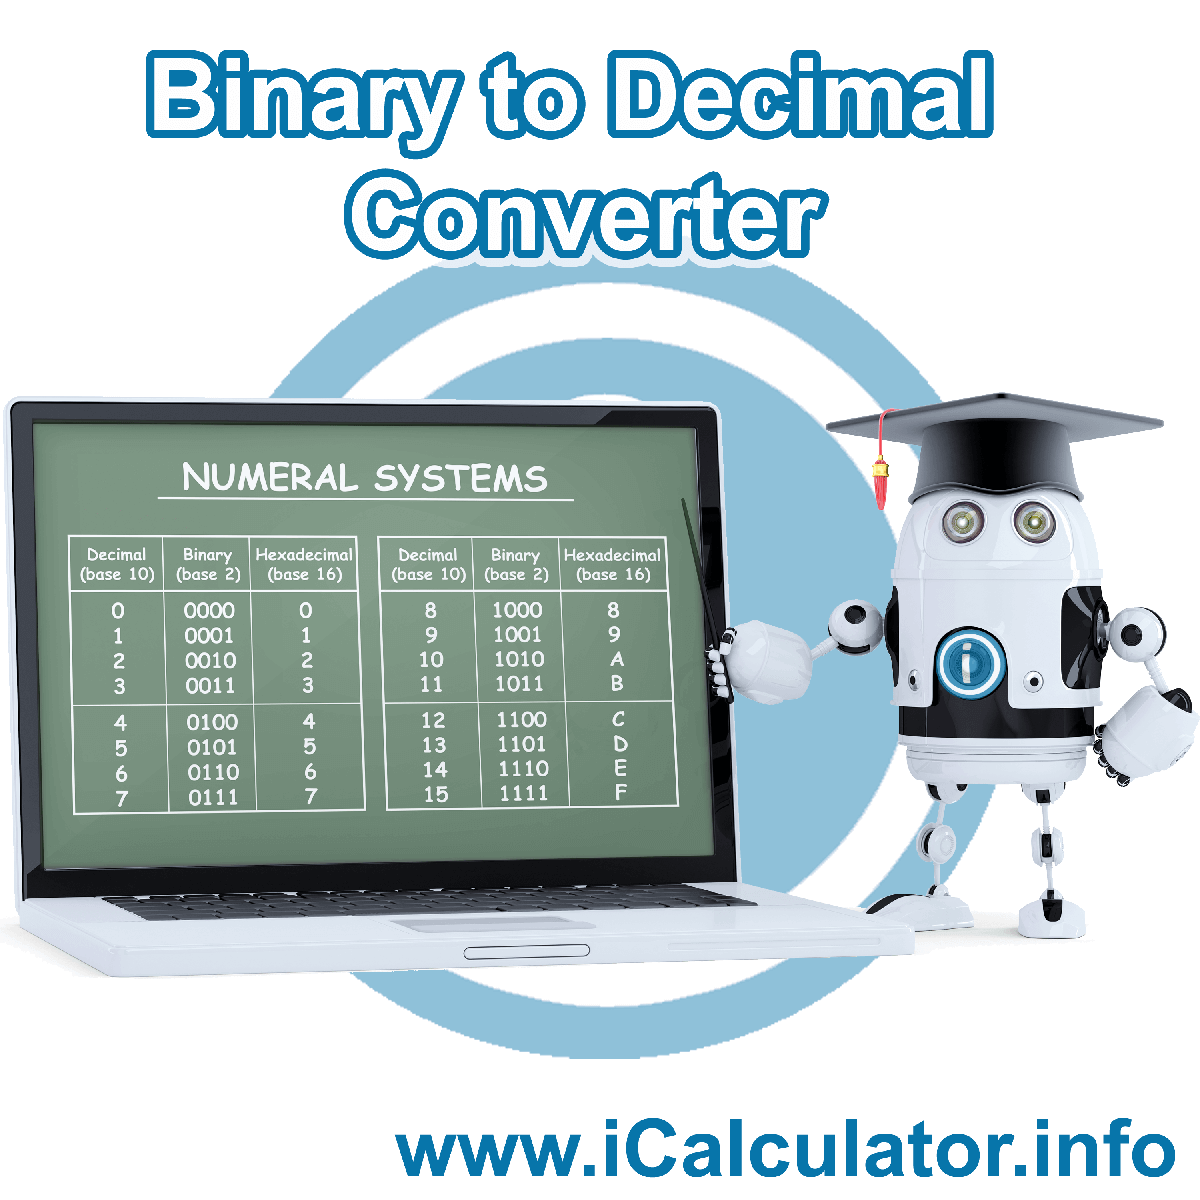 Binary to Decimal Converter. This image shows the properties and formula for Binary to Decimal Converter